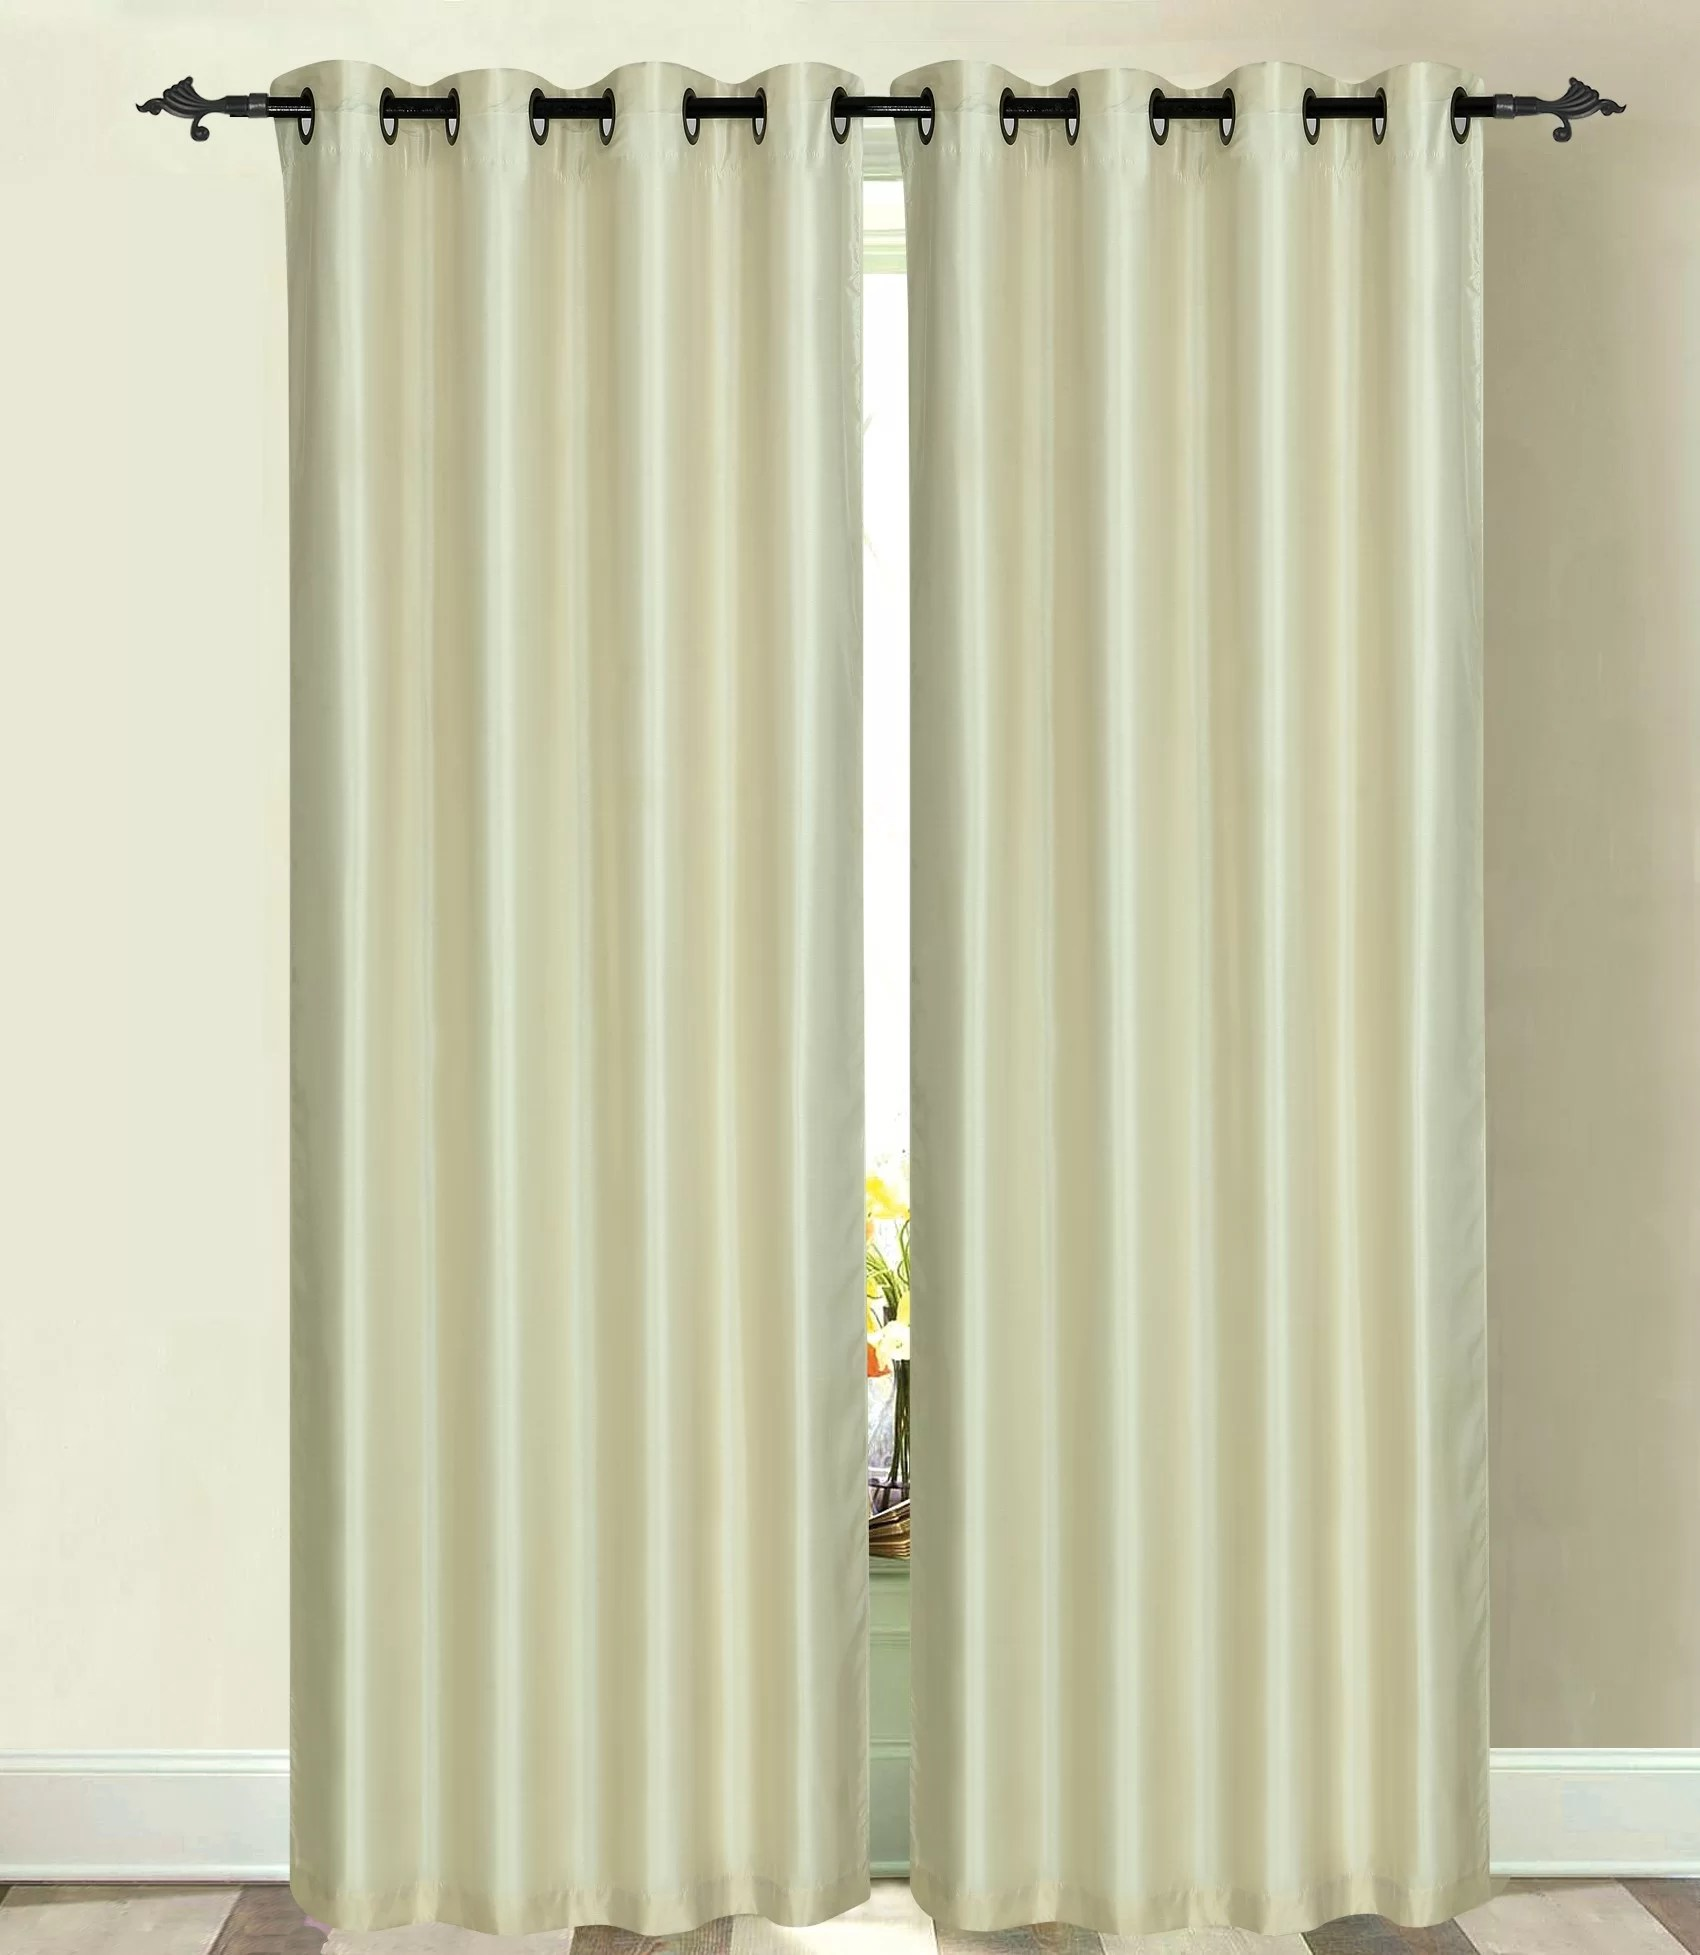 Double Wide Curtain Panels Hults Faux Silk Double Layer Extra Wide Solid Max Blackout Thermal Grommet Curtain Panels